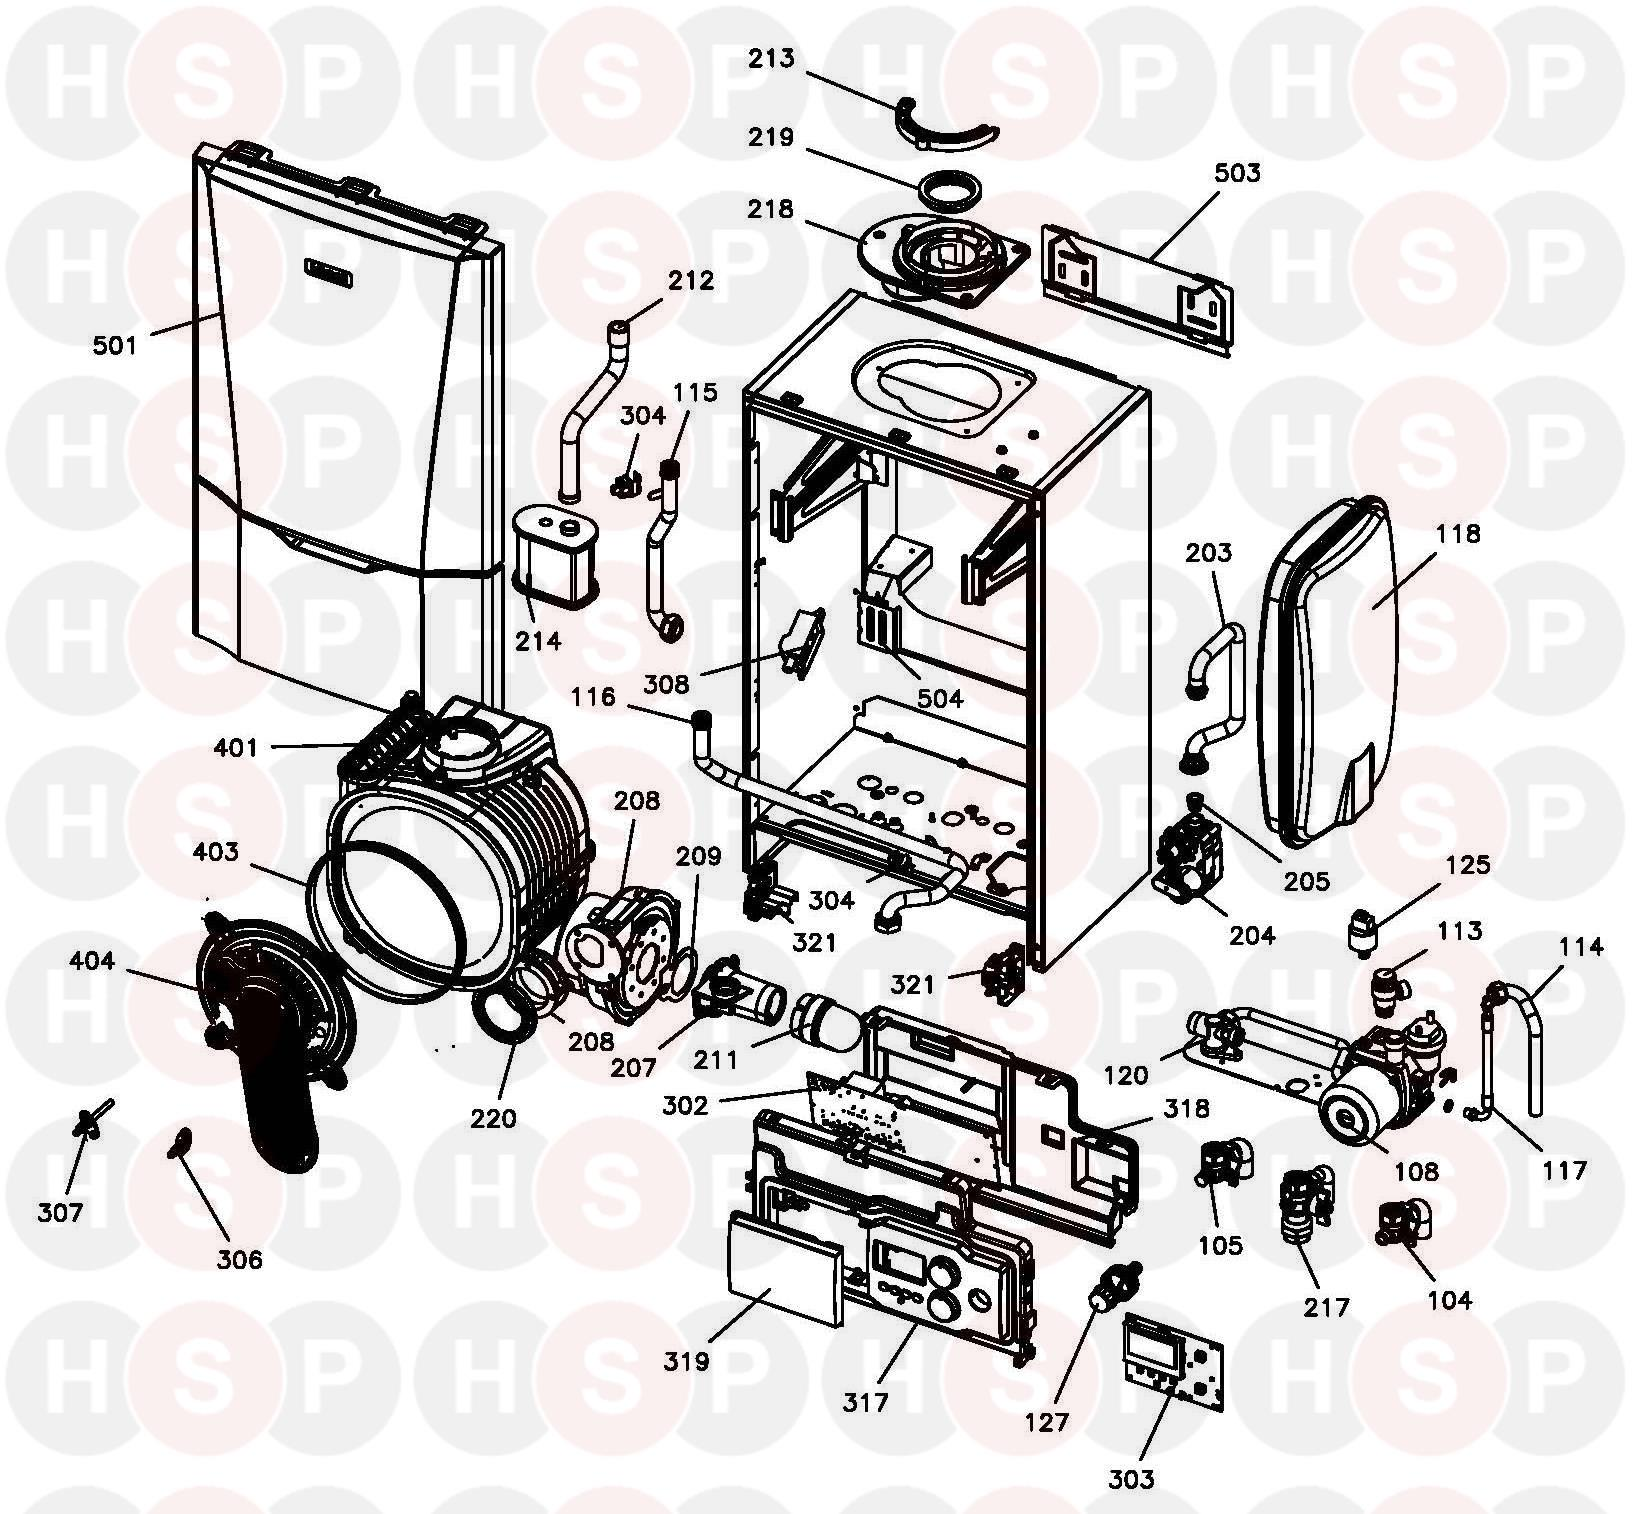 ideal s32 system  boiler exploded view  diagram